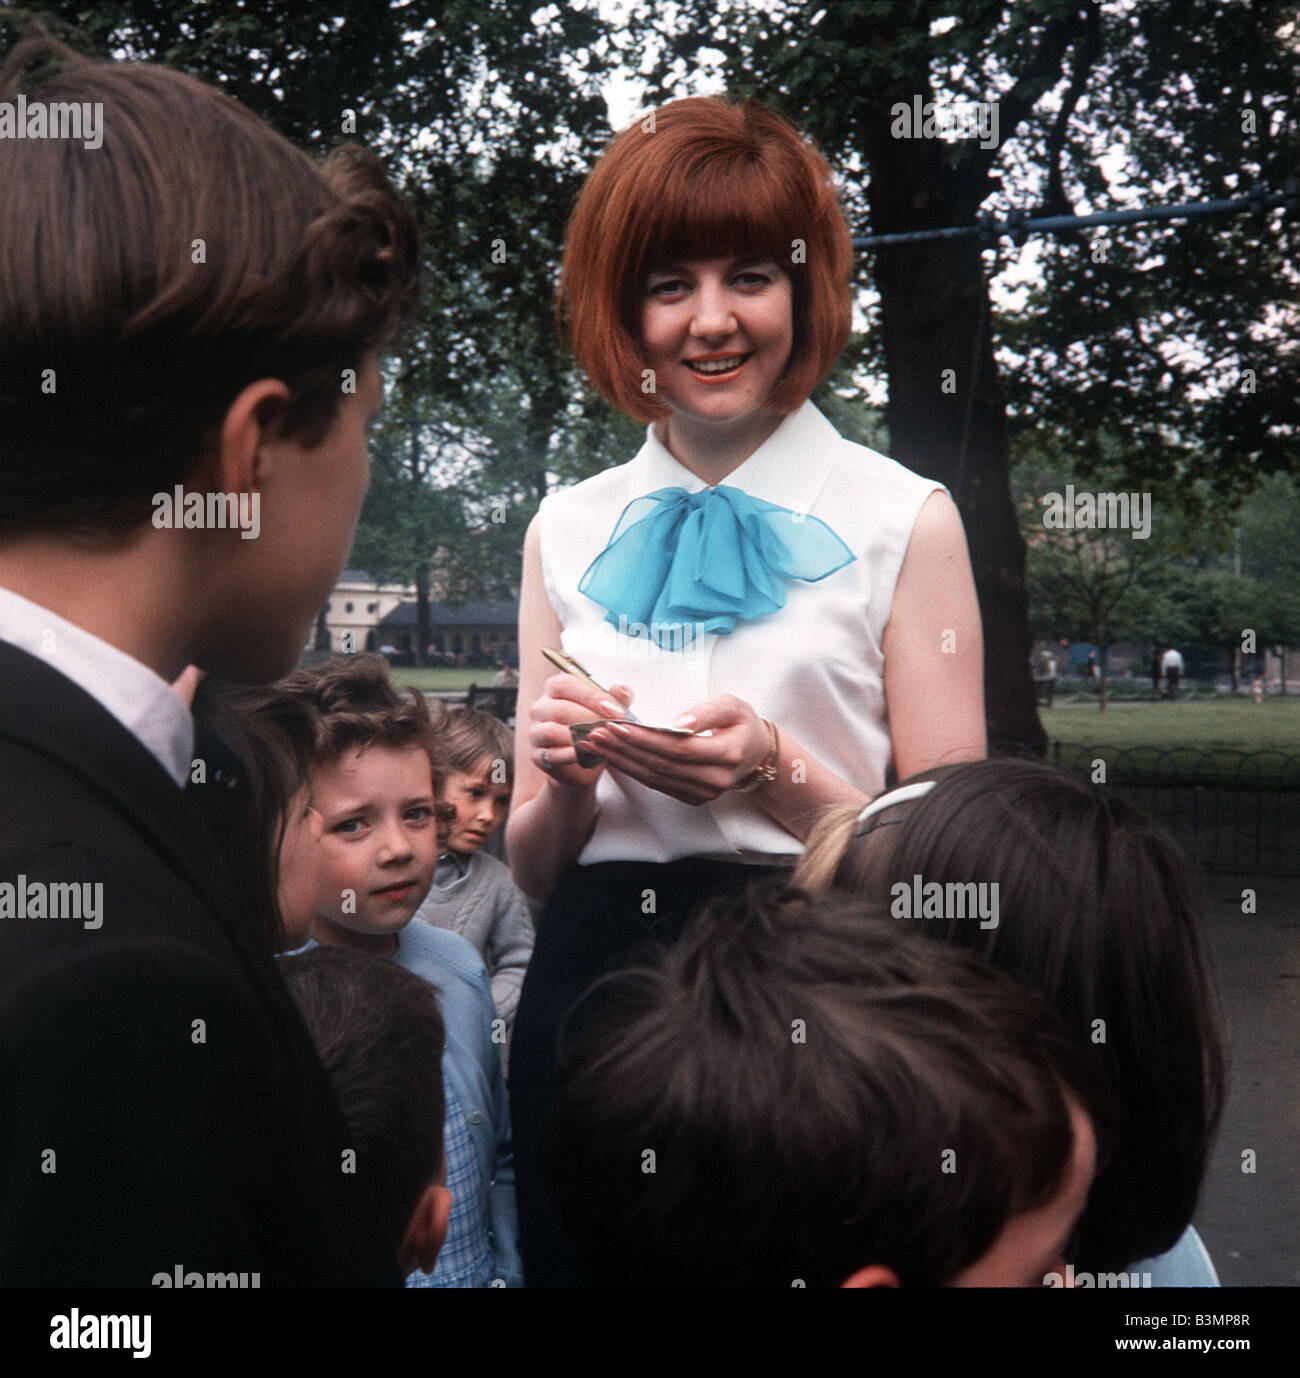 Cilla Black Singer Tv Presenter Stands Signing Autographs For Young Children